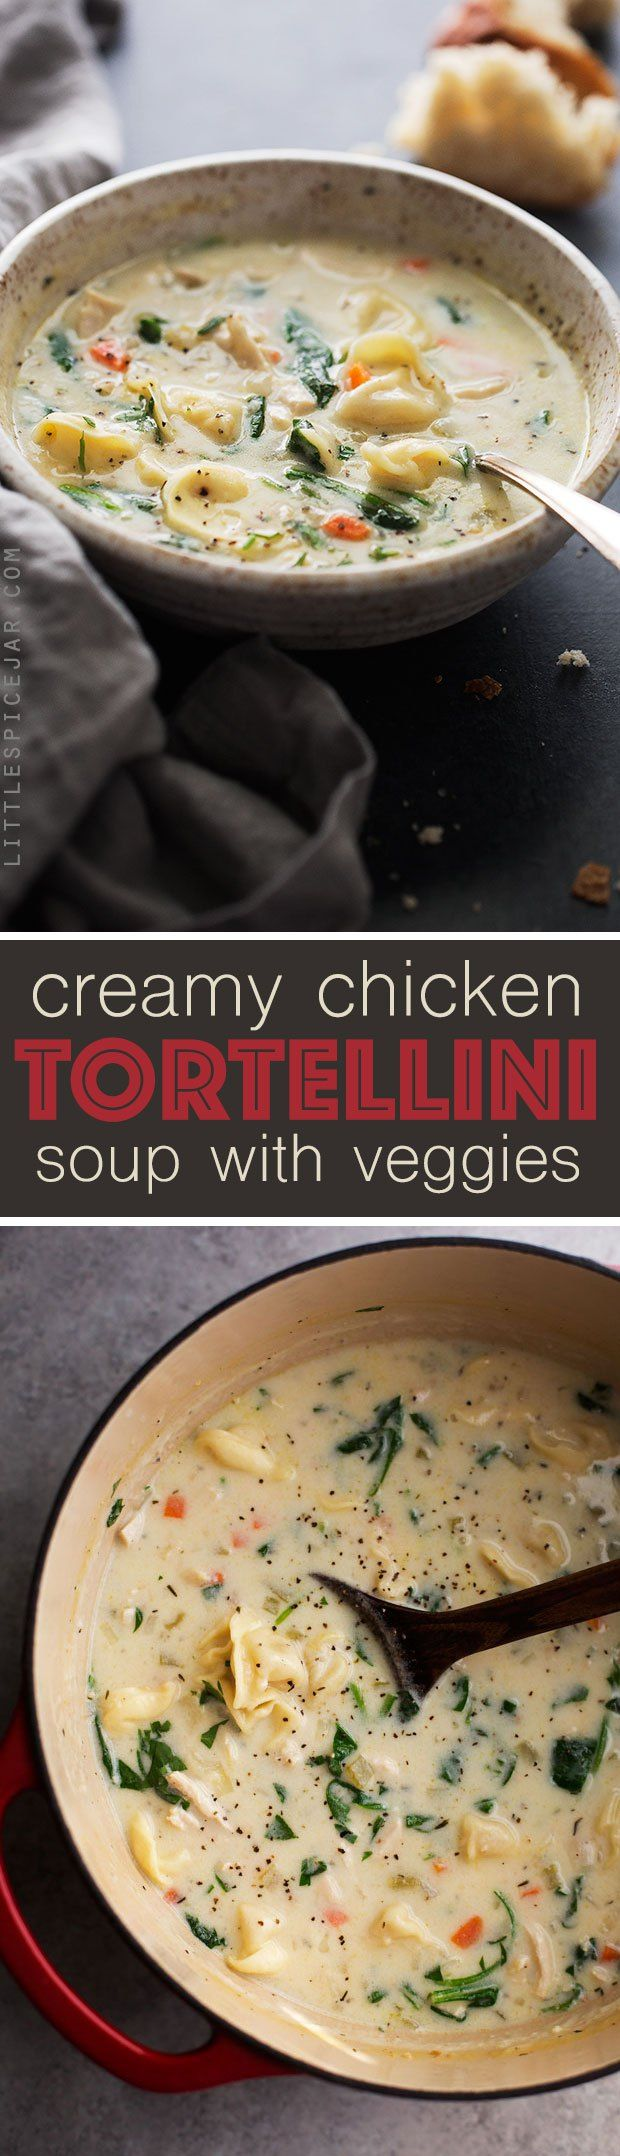 Creamy Chicken Tortellini Soup - a creamy chicken soup with tons of carrots, baby spinach, and cheesy tortellini. So perfect for fall! #chickennoodlesoup #chickensoup #chickentortellinisoup   Littlespicejar.com